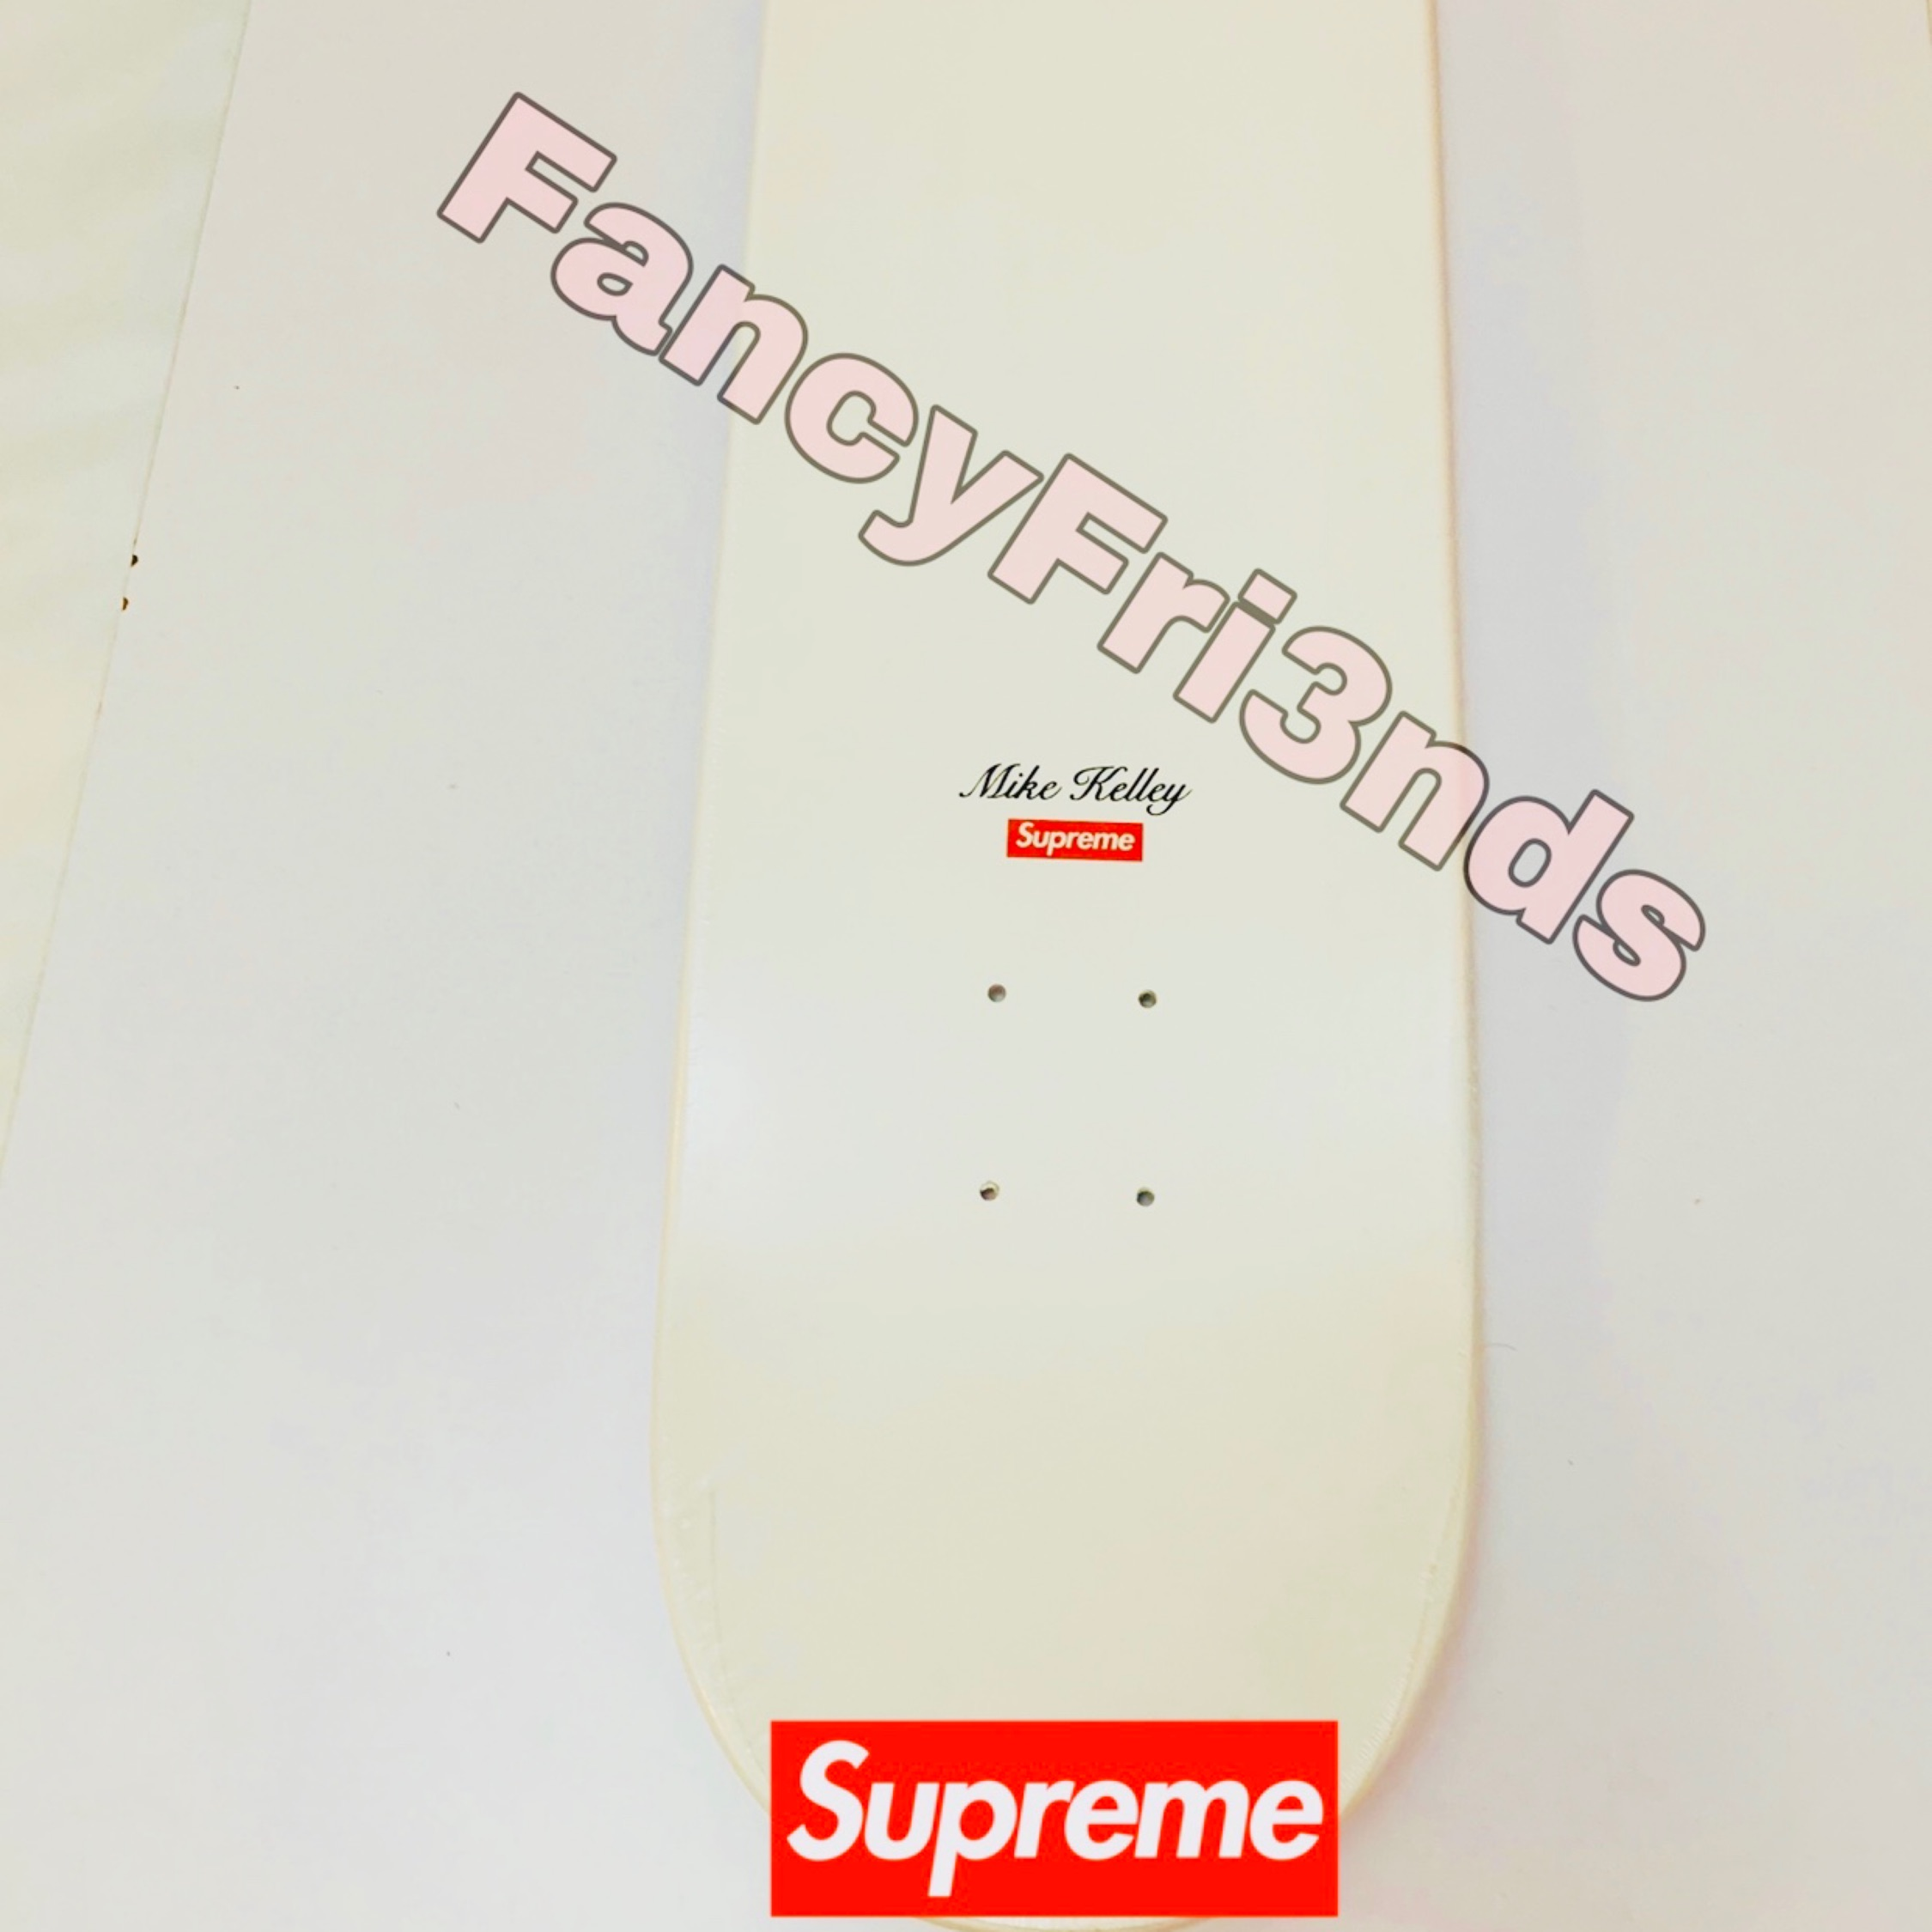 Supreme Mike Kelley Ahhyouth! Skateboard Deck #4